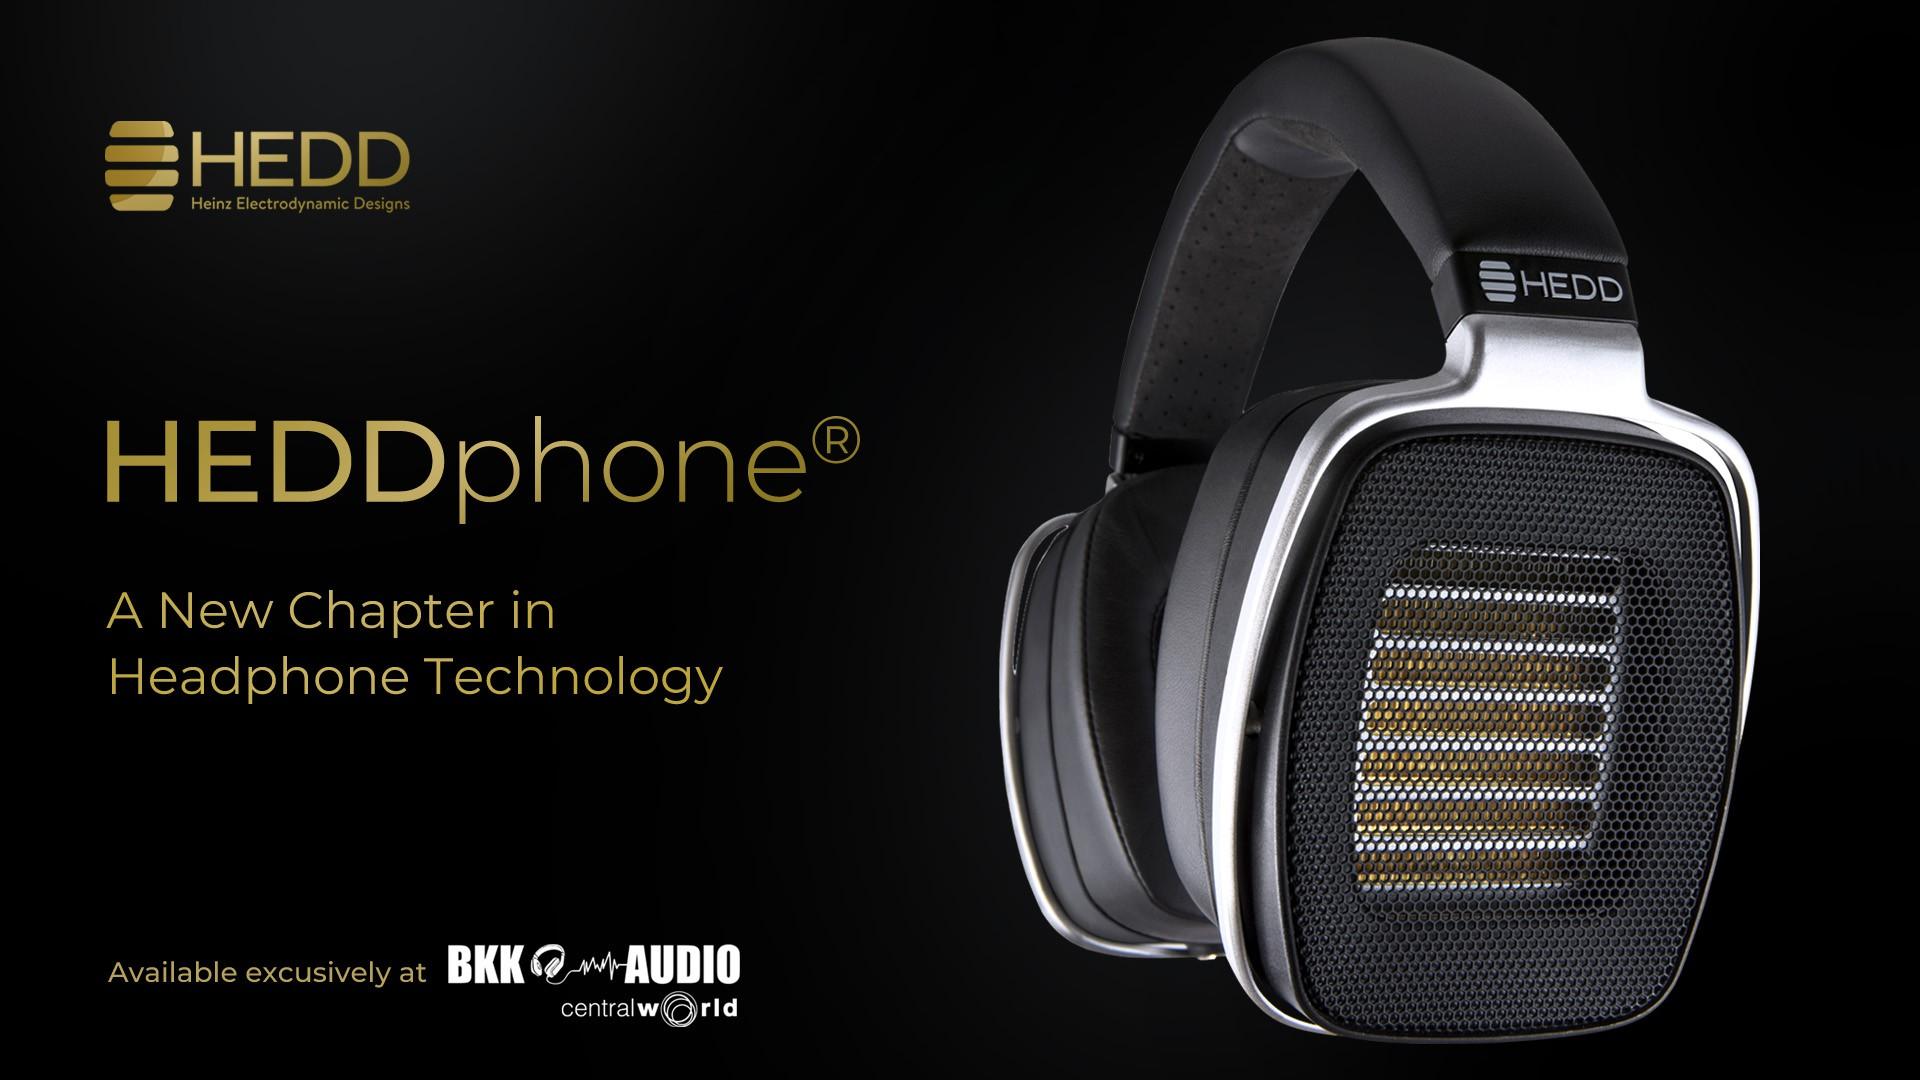 Banners ads HEDD - HEDDphone The Air Motion Transformer (AMT) headphone